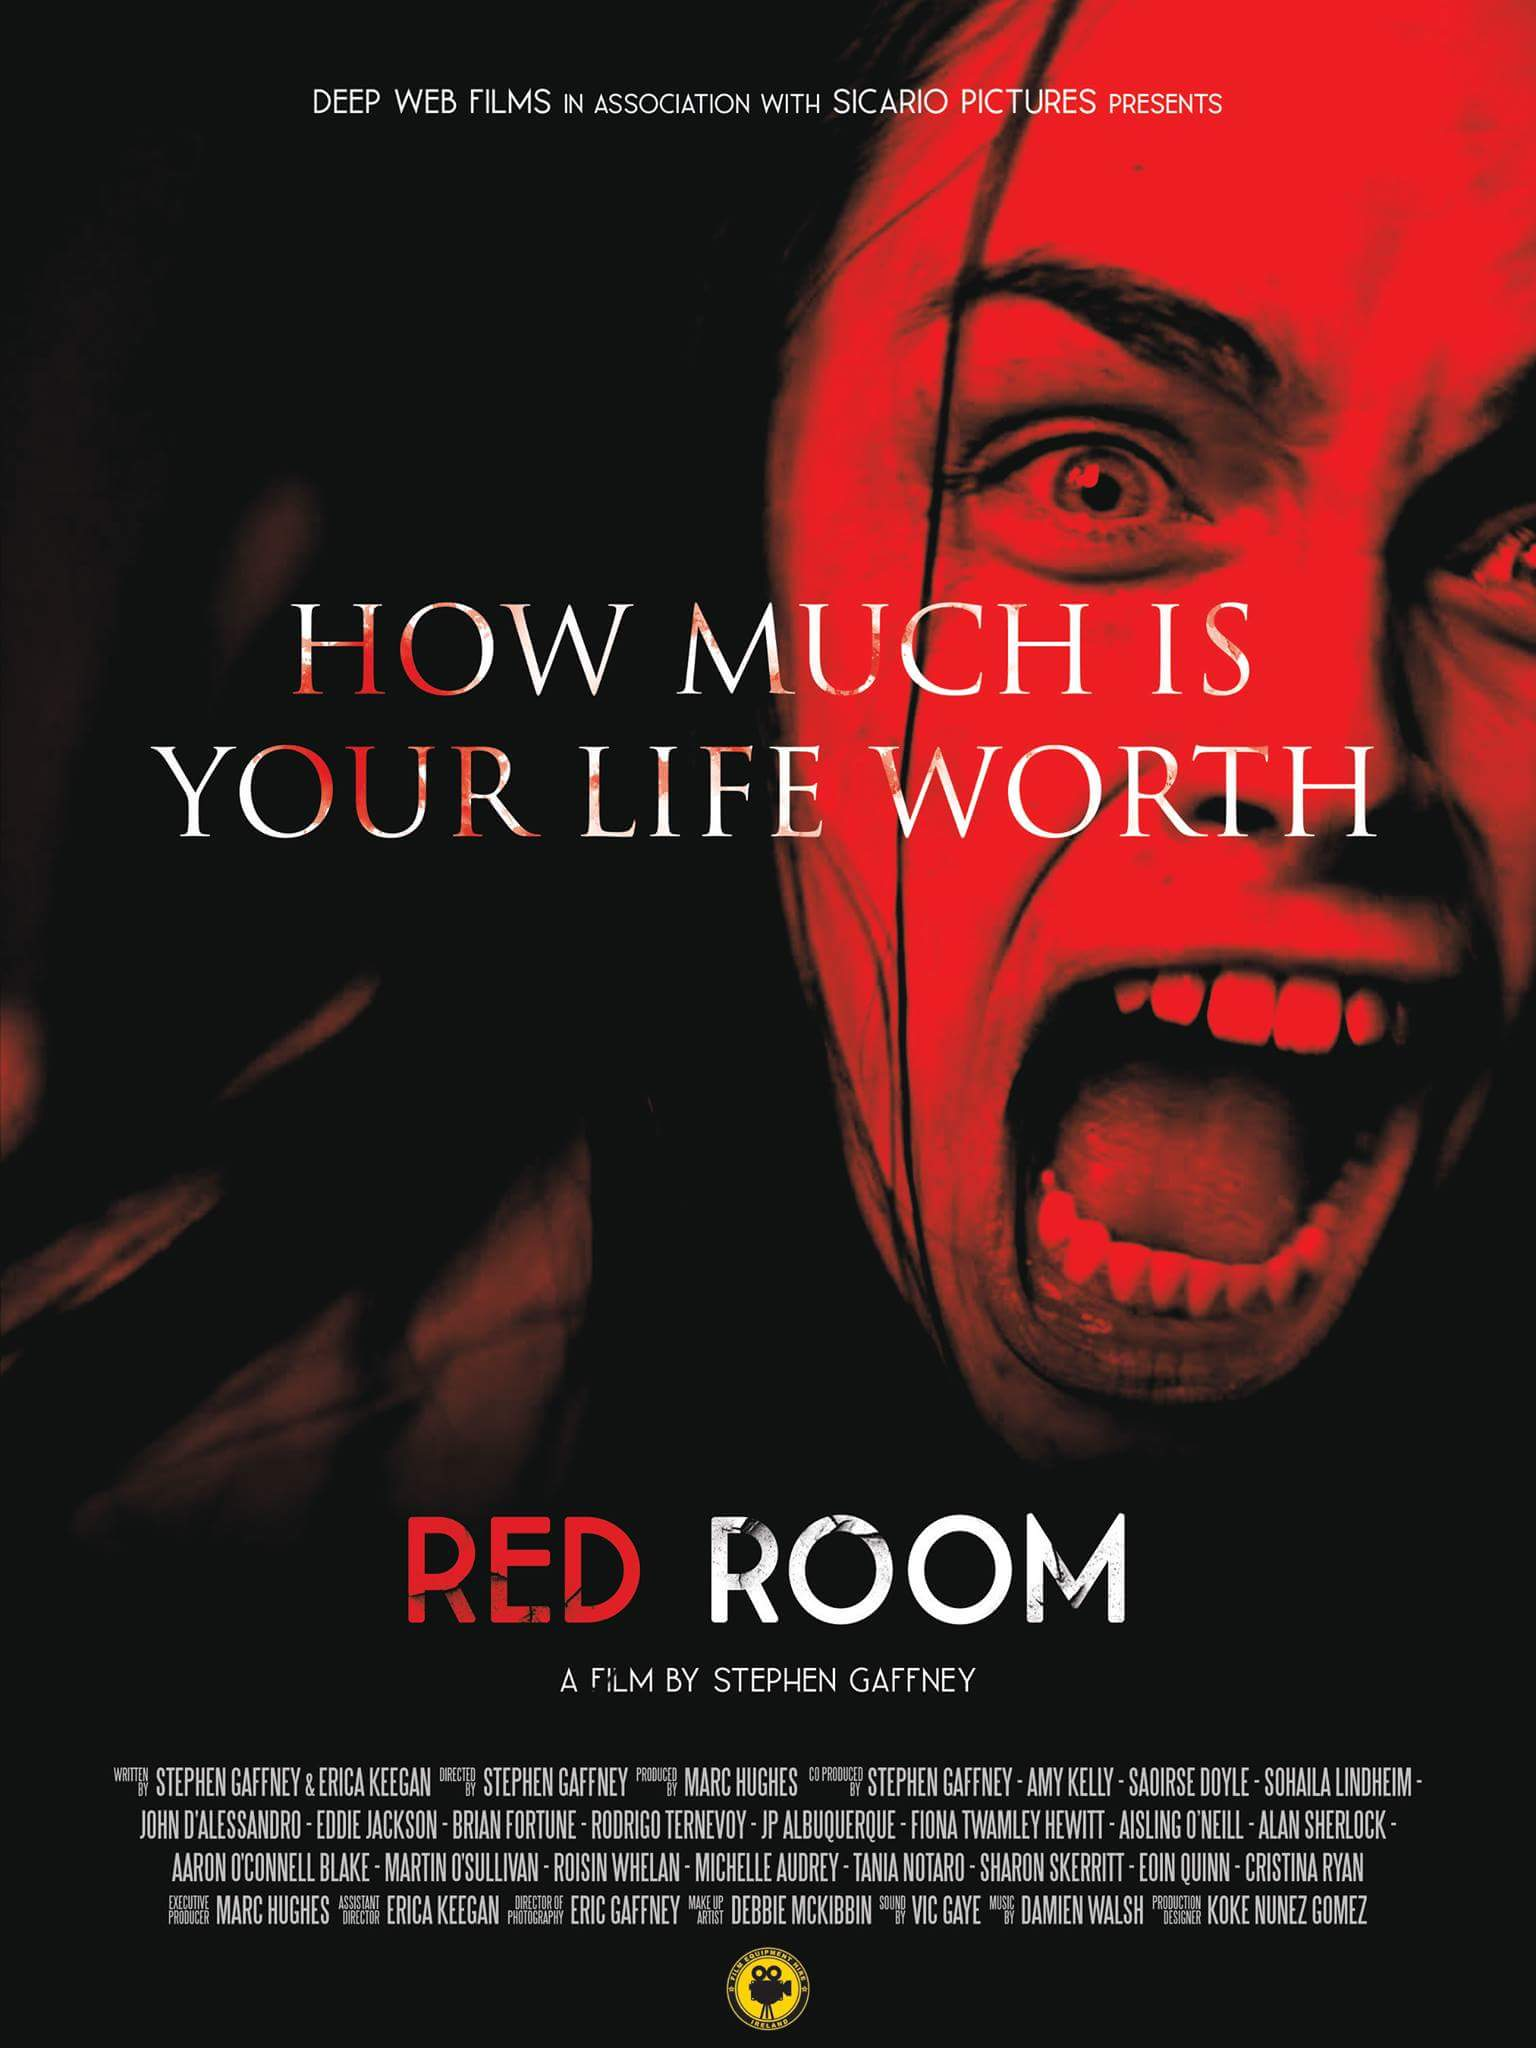 Movies.ie interview with Director Stephen Gaffeny of RED ROOM